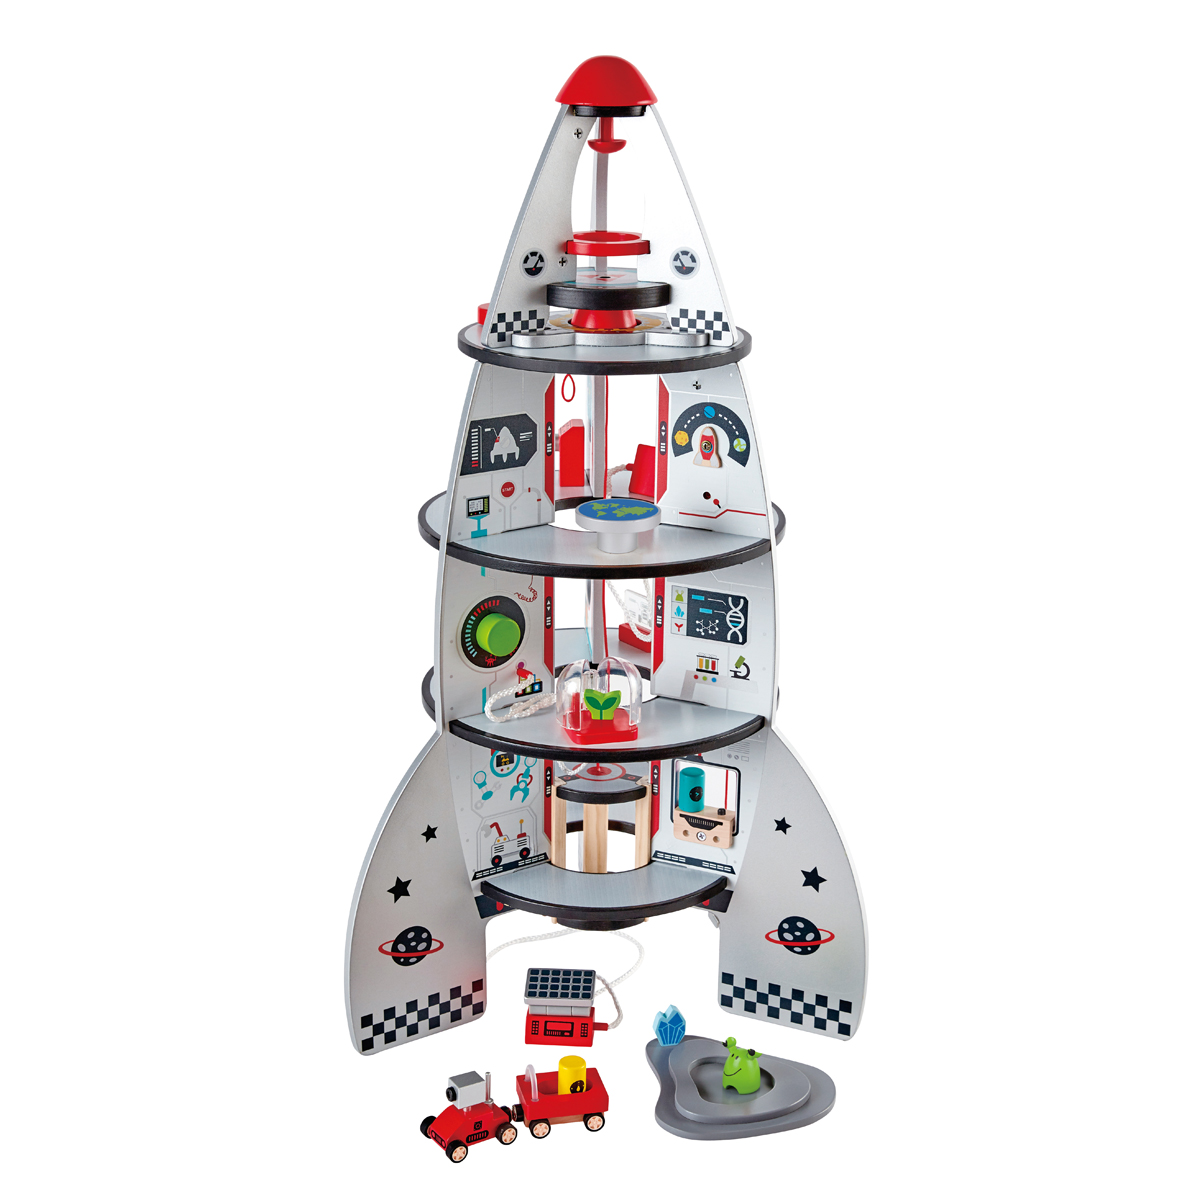 Hape Four Stage Rocket Ship Toy